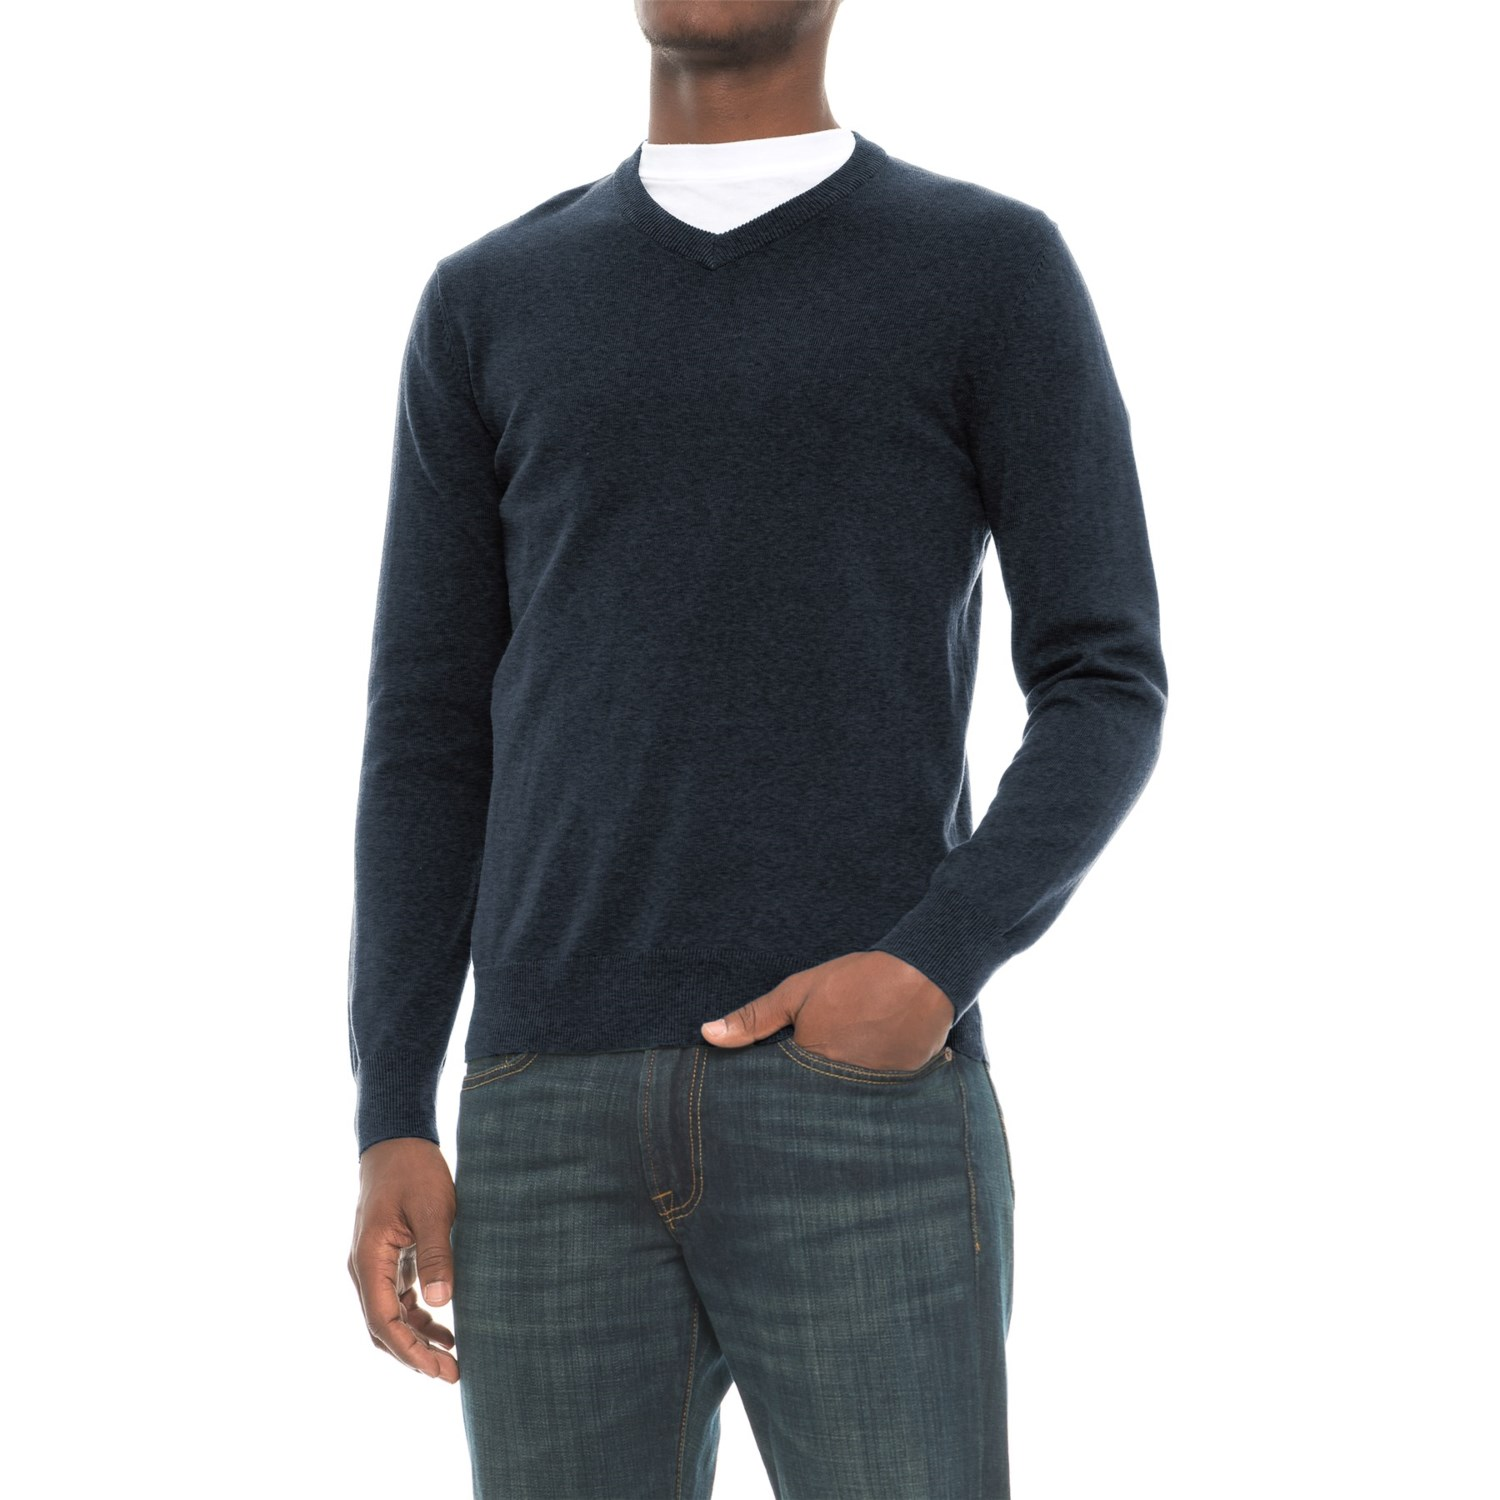 Mark Law Cotton Sweater (For Men) - Save 66%